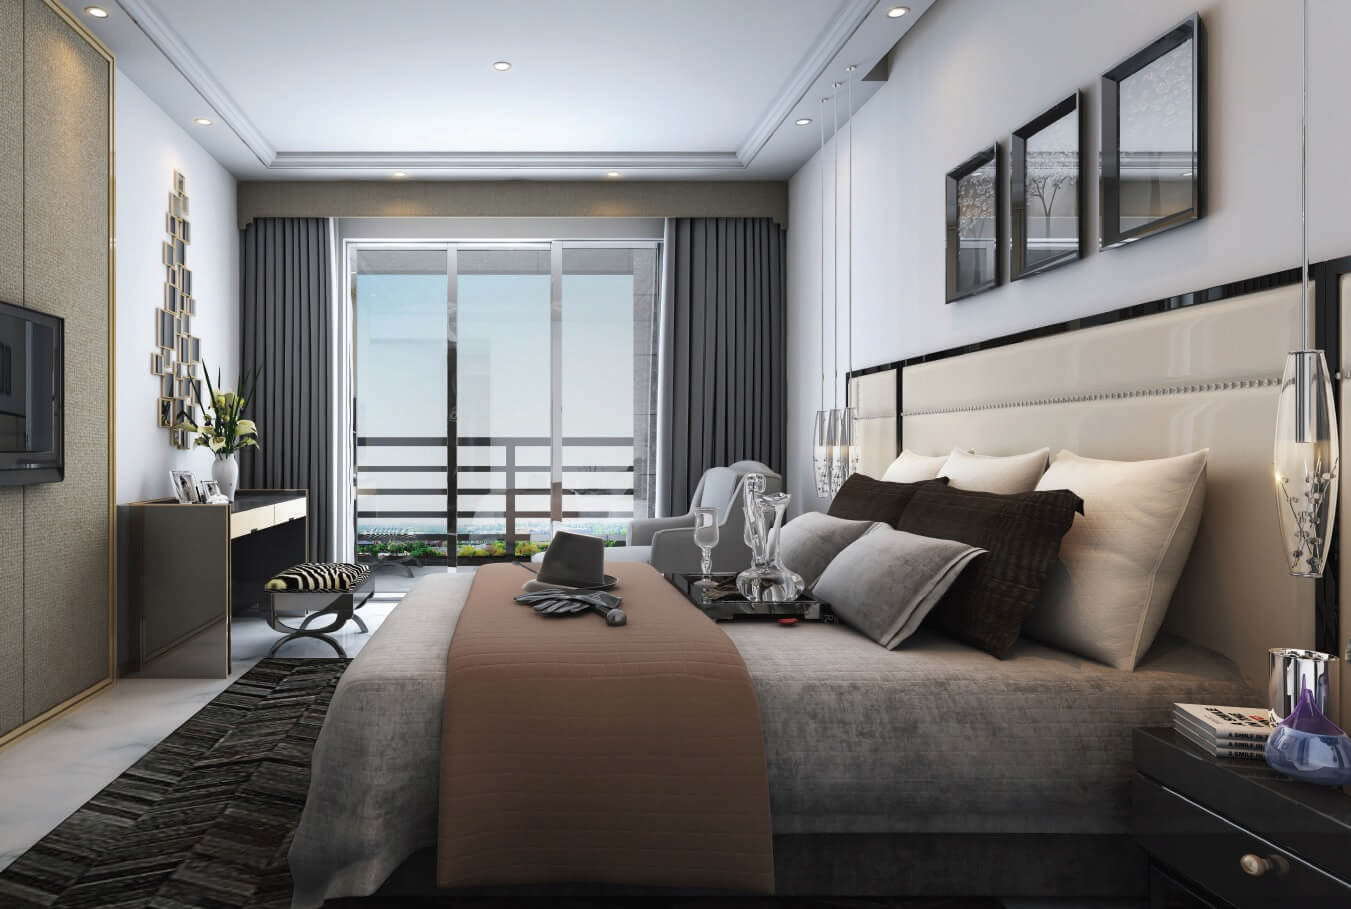 apartment-interiors-Picture-anantnath-and-forever-city-2624387